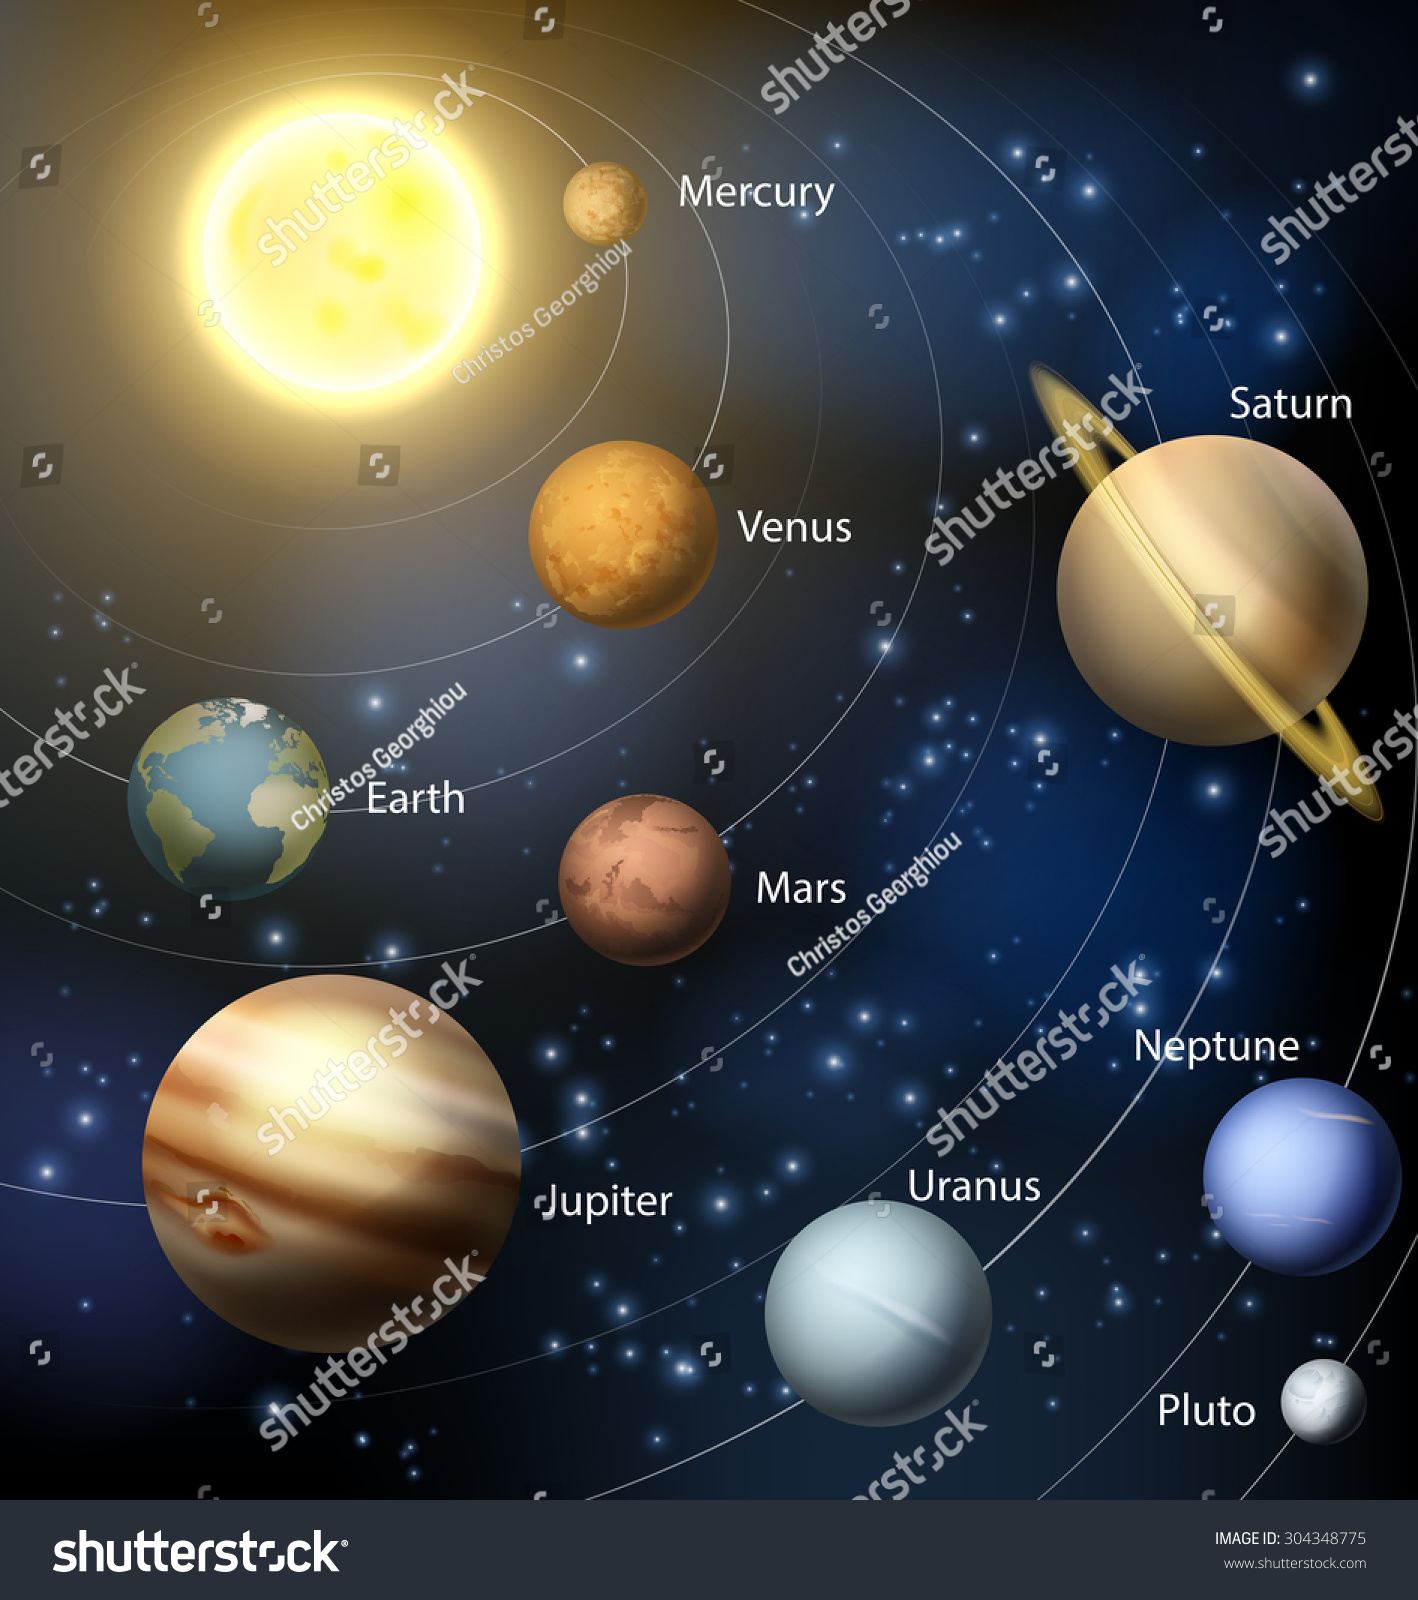 Illustration Planets Our Solar System Text Stock Vector ...